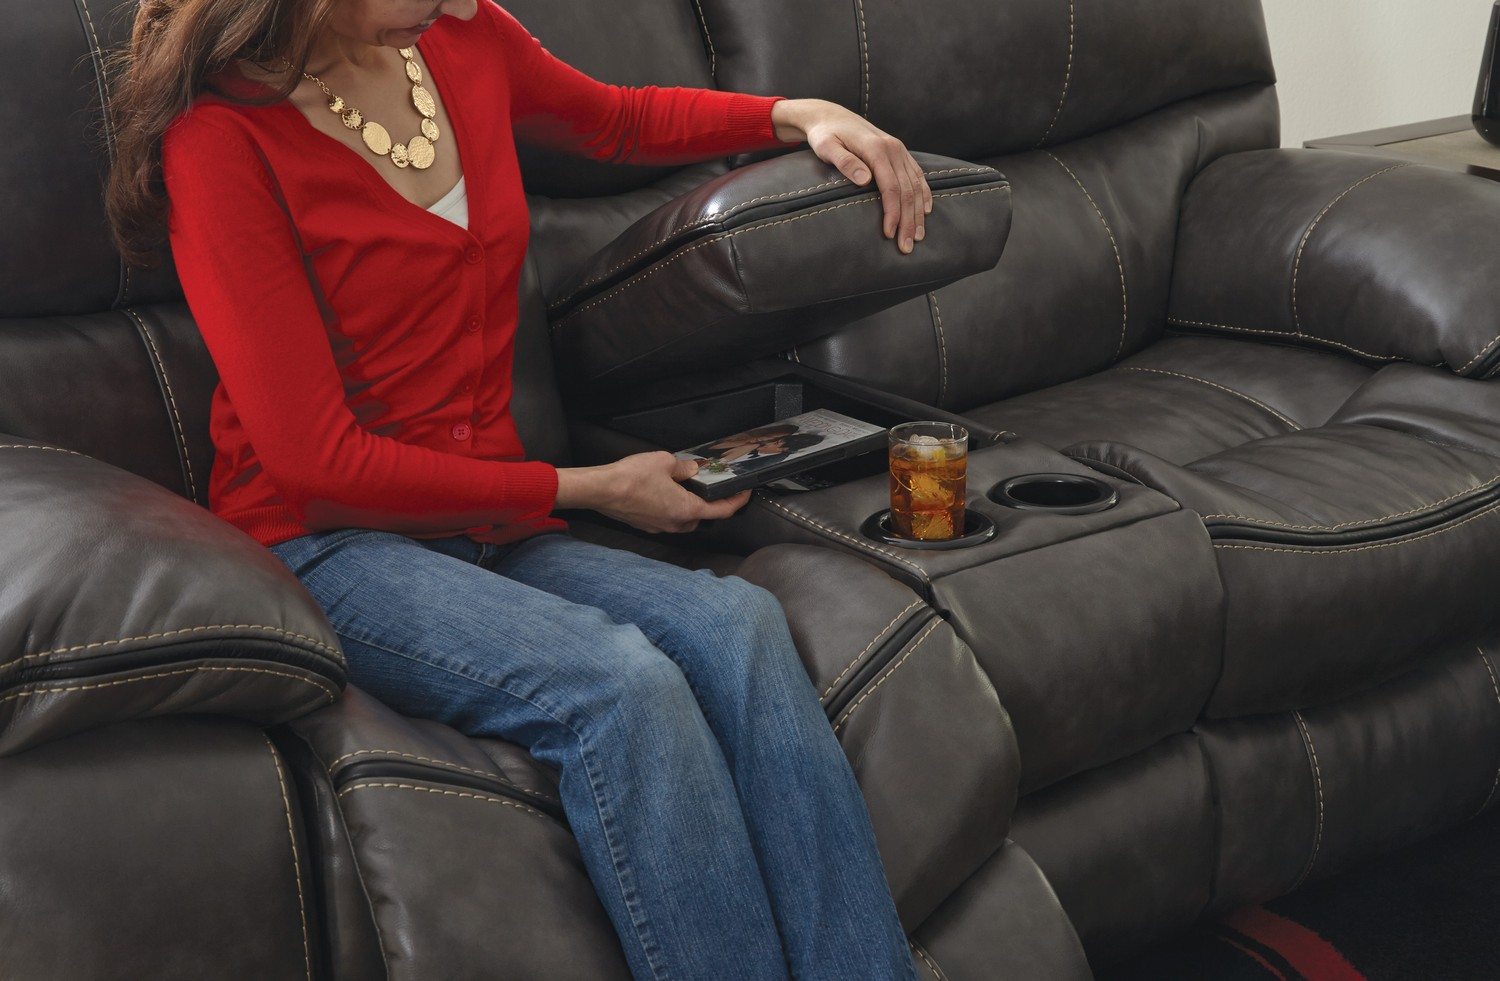 CatNapper Camden Reclining Gliding Console Loveseat with Storage and Cupholders - Steel